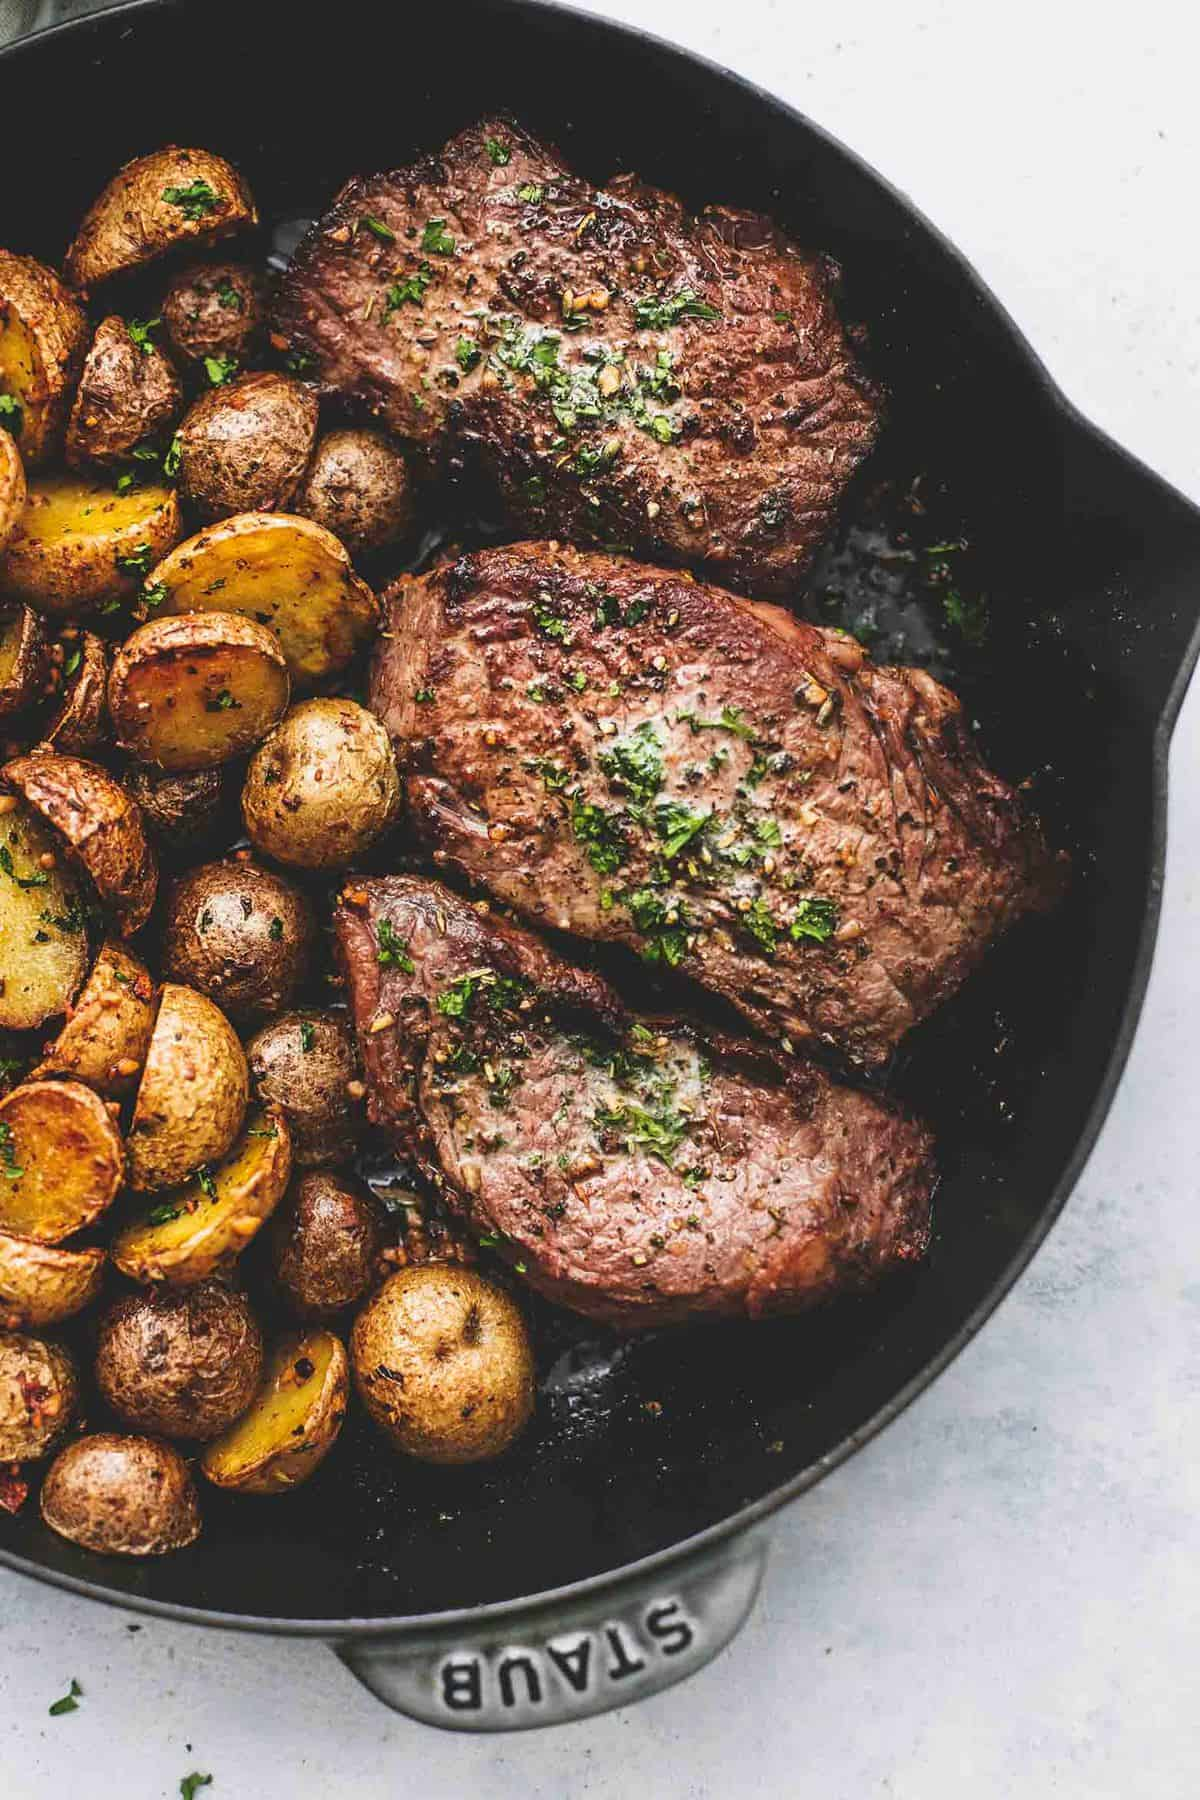 Garlic Butter Steak and Potatoes Skillet recipe | lecremedelacrumb.com